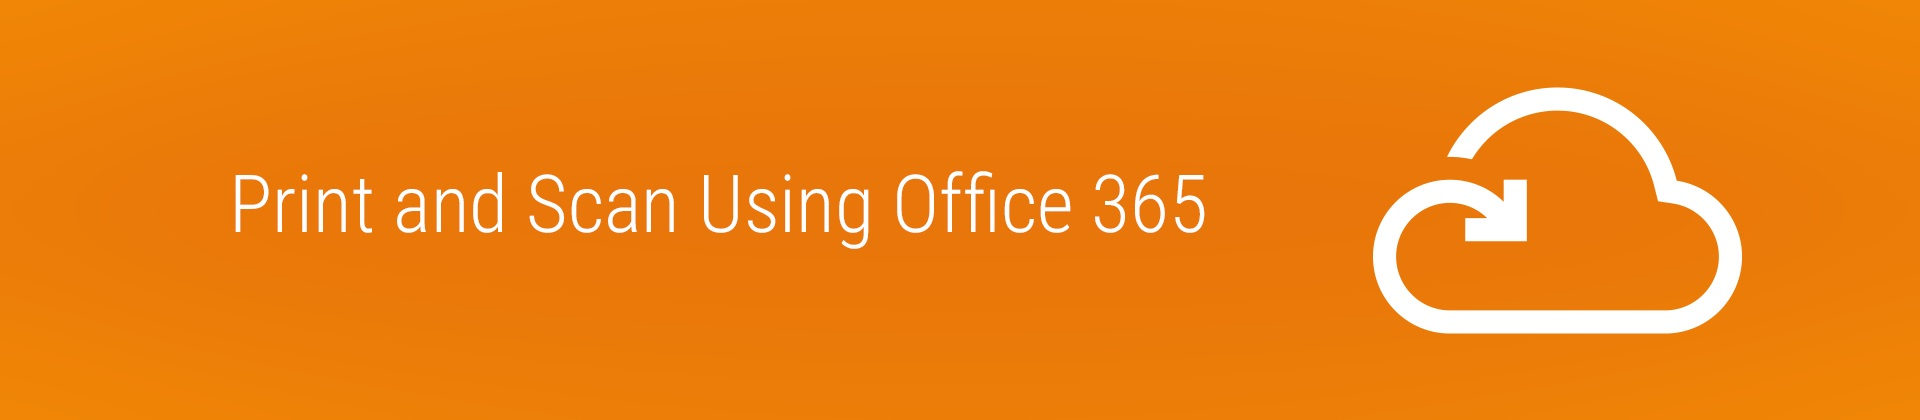 print and scan using office365